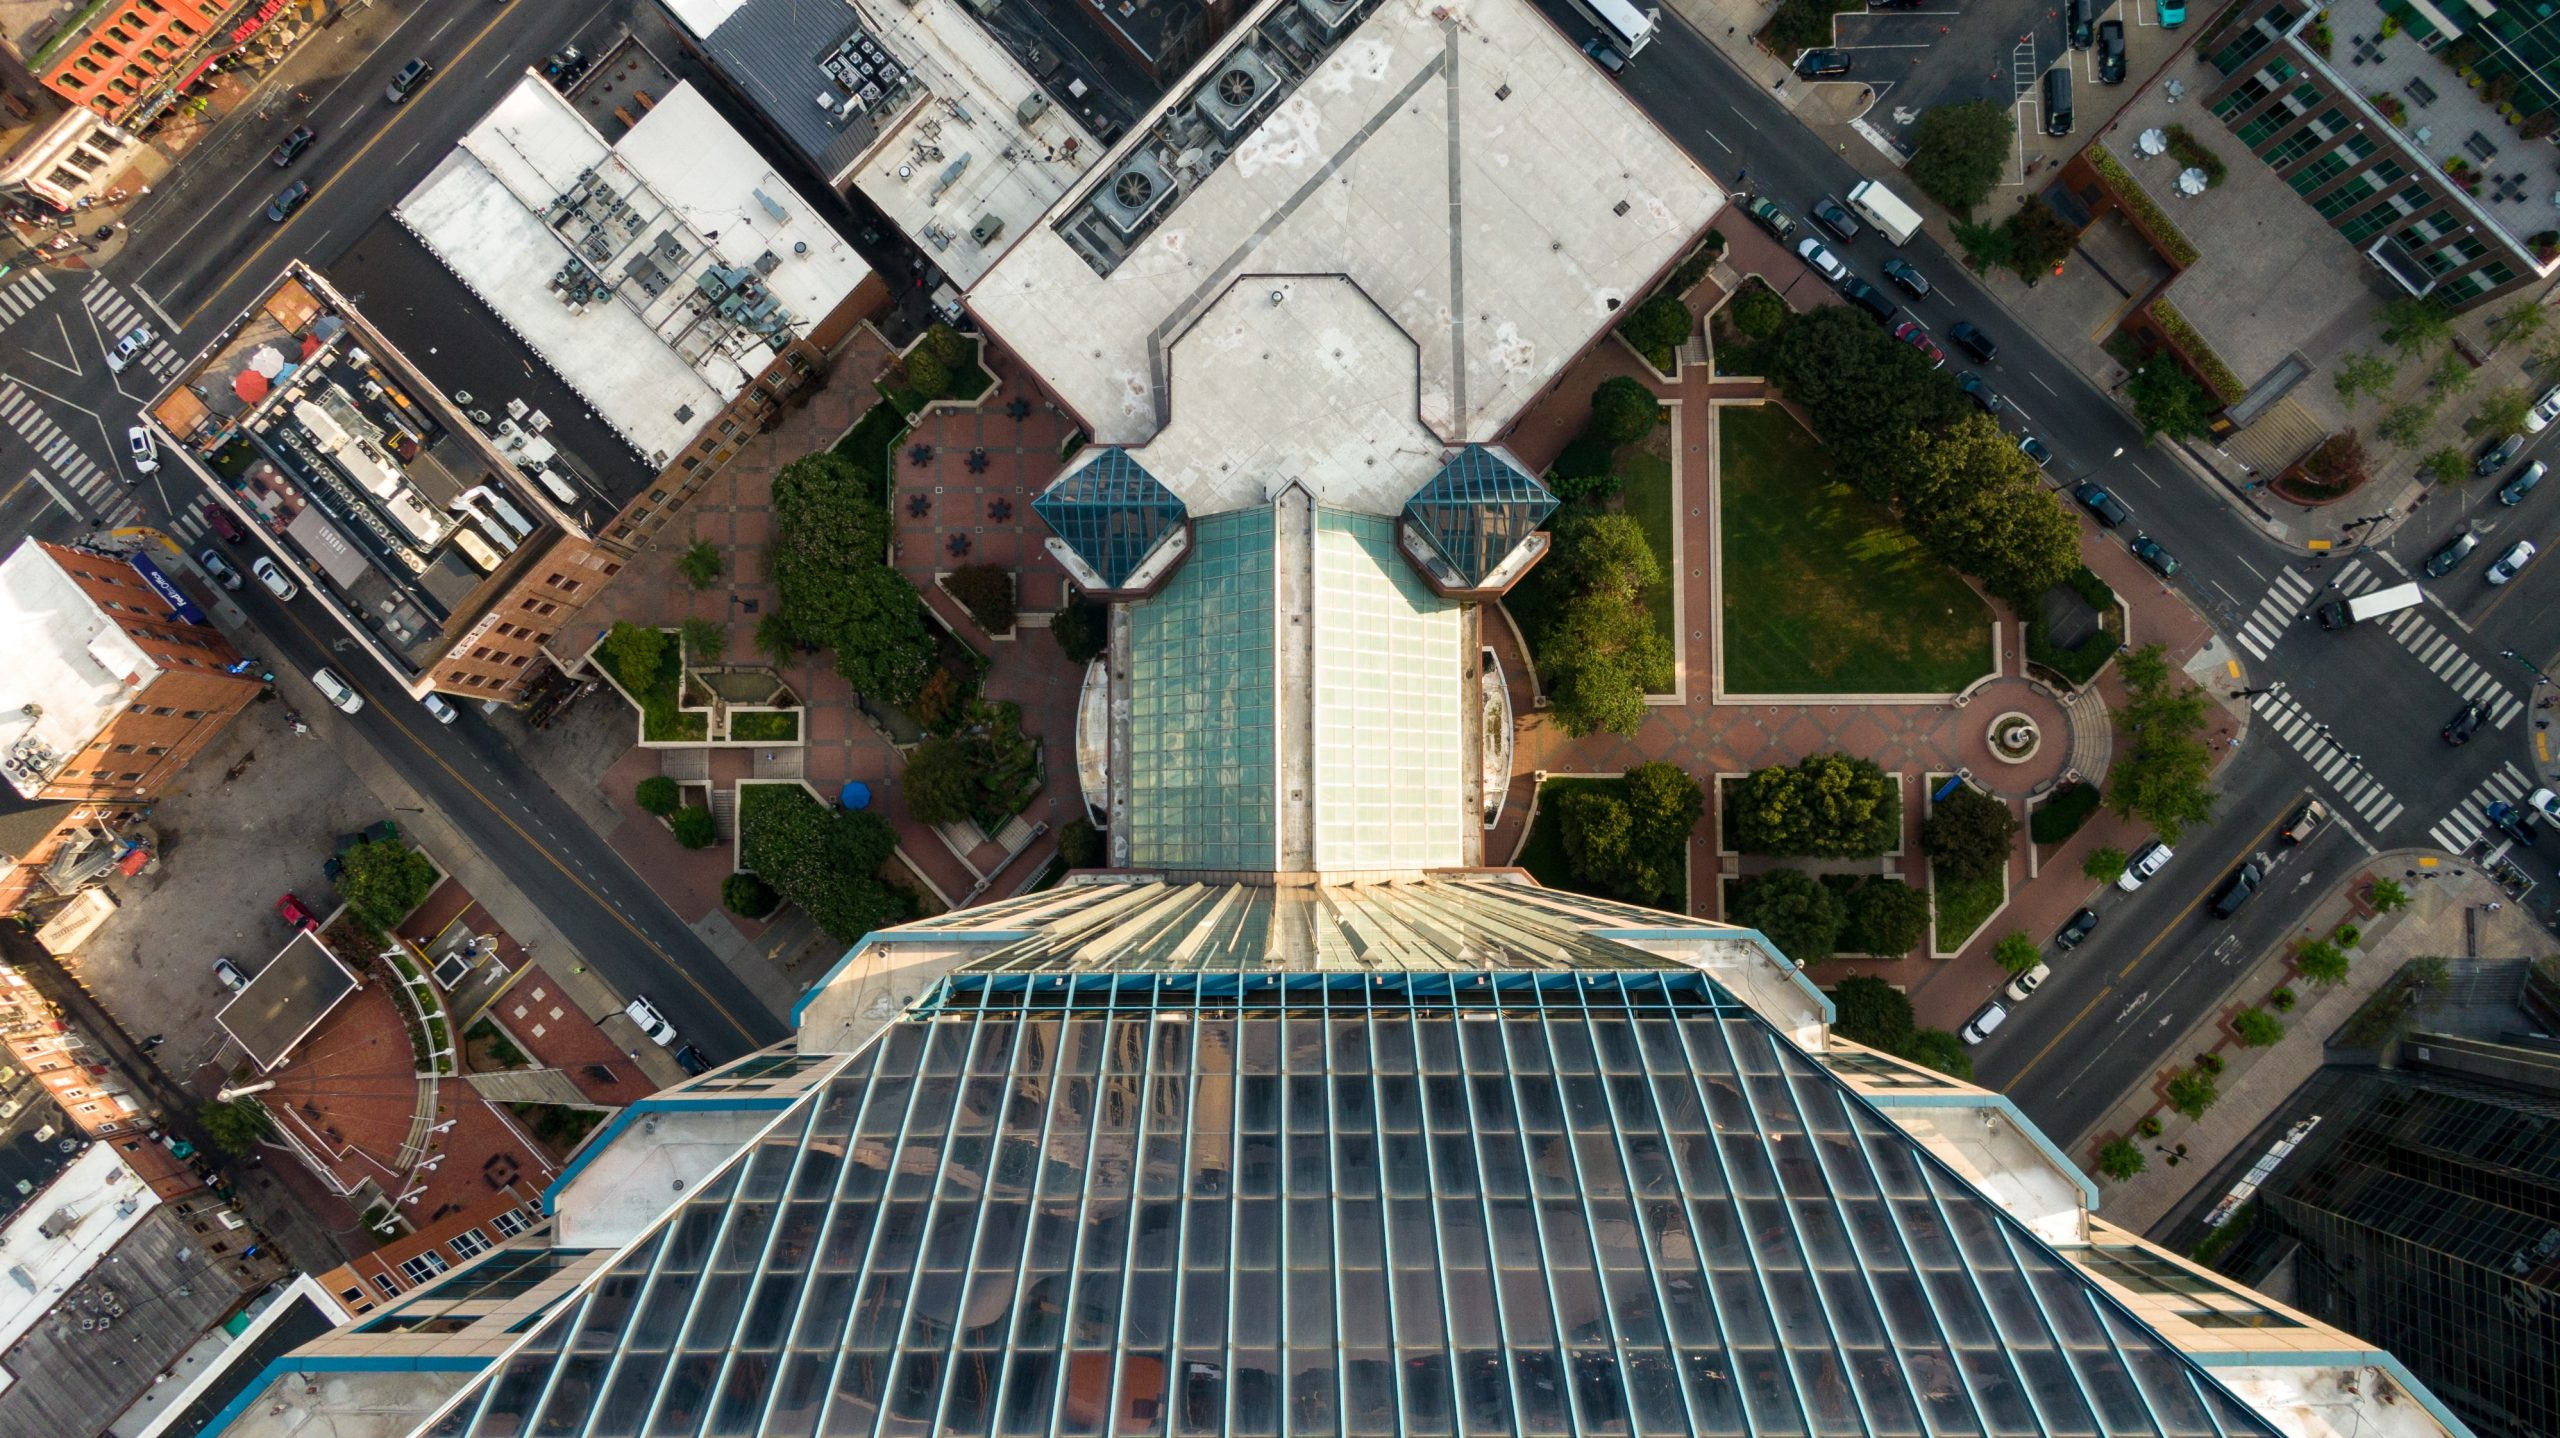 Areal view of commercial roofing